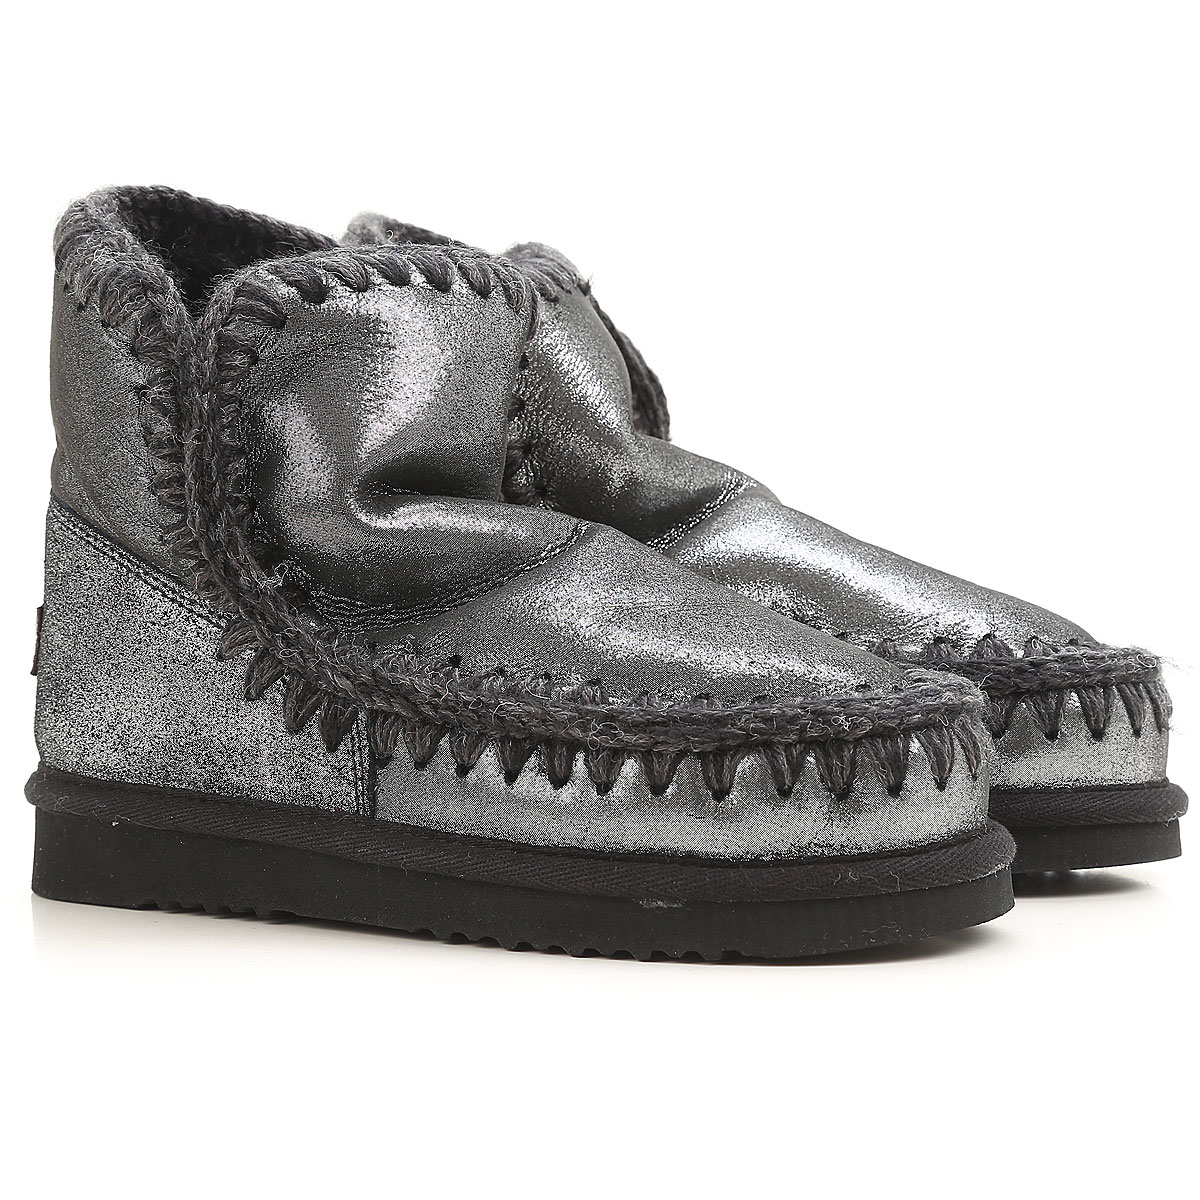 Mou Boots for Women, Booties On Sale, Silver Black, Fabric, 2019, EUR 38 - UK 5 - USA 7.5 EUR 40 - UK 7 - USA 9.5